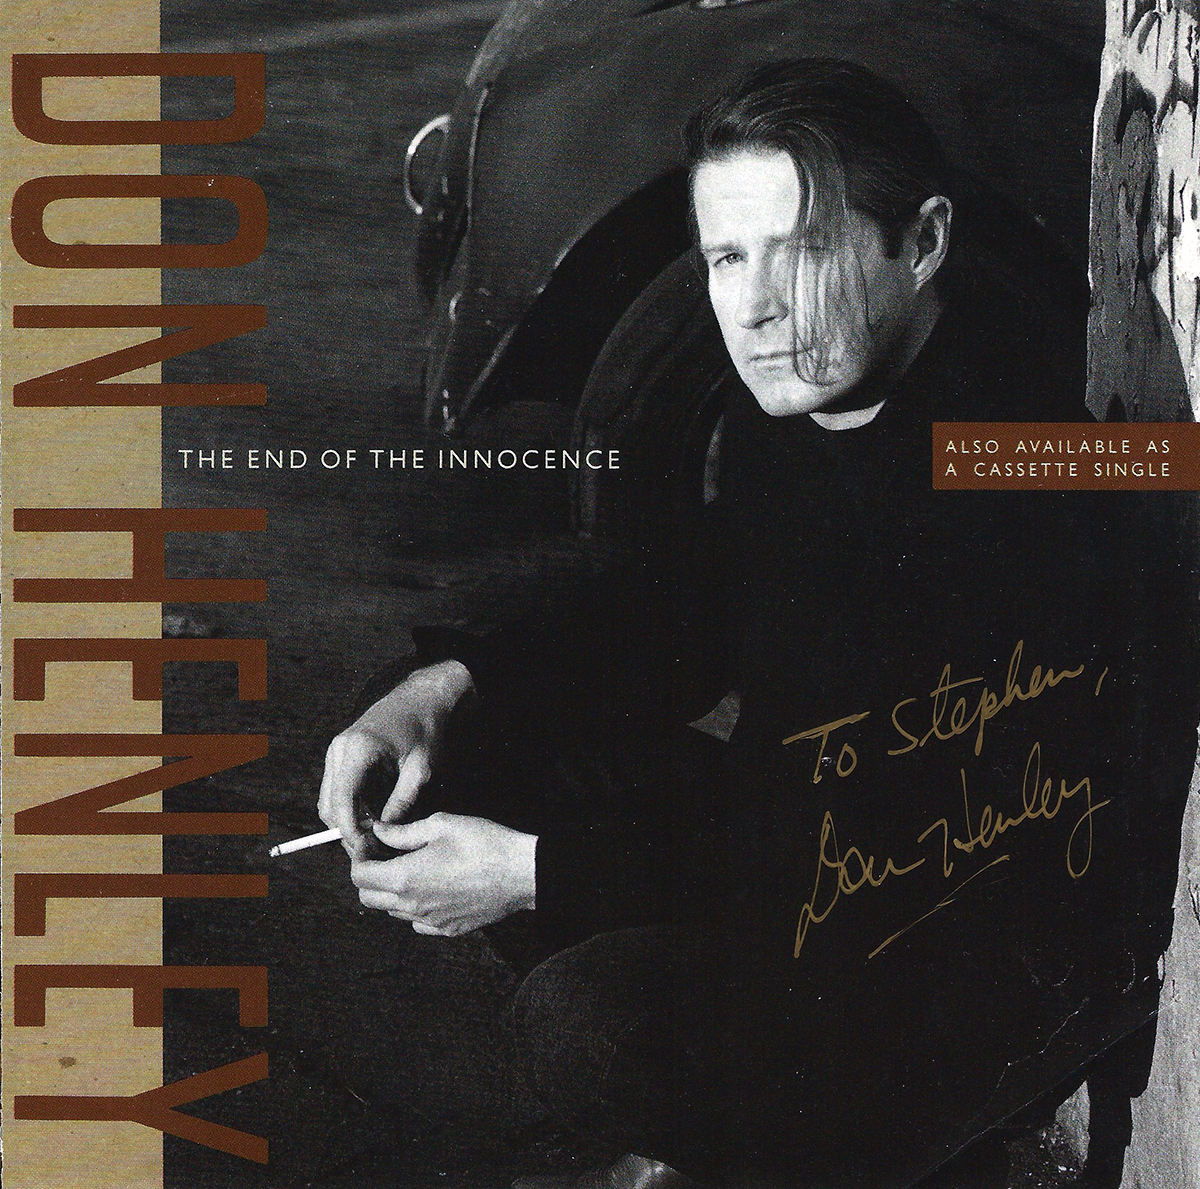 Don Henley 45rpm Sleeve - The End of the Innocence